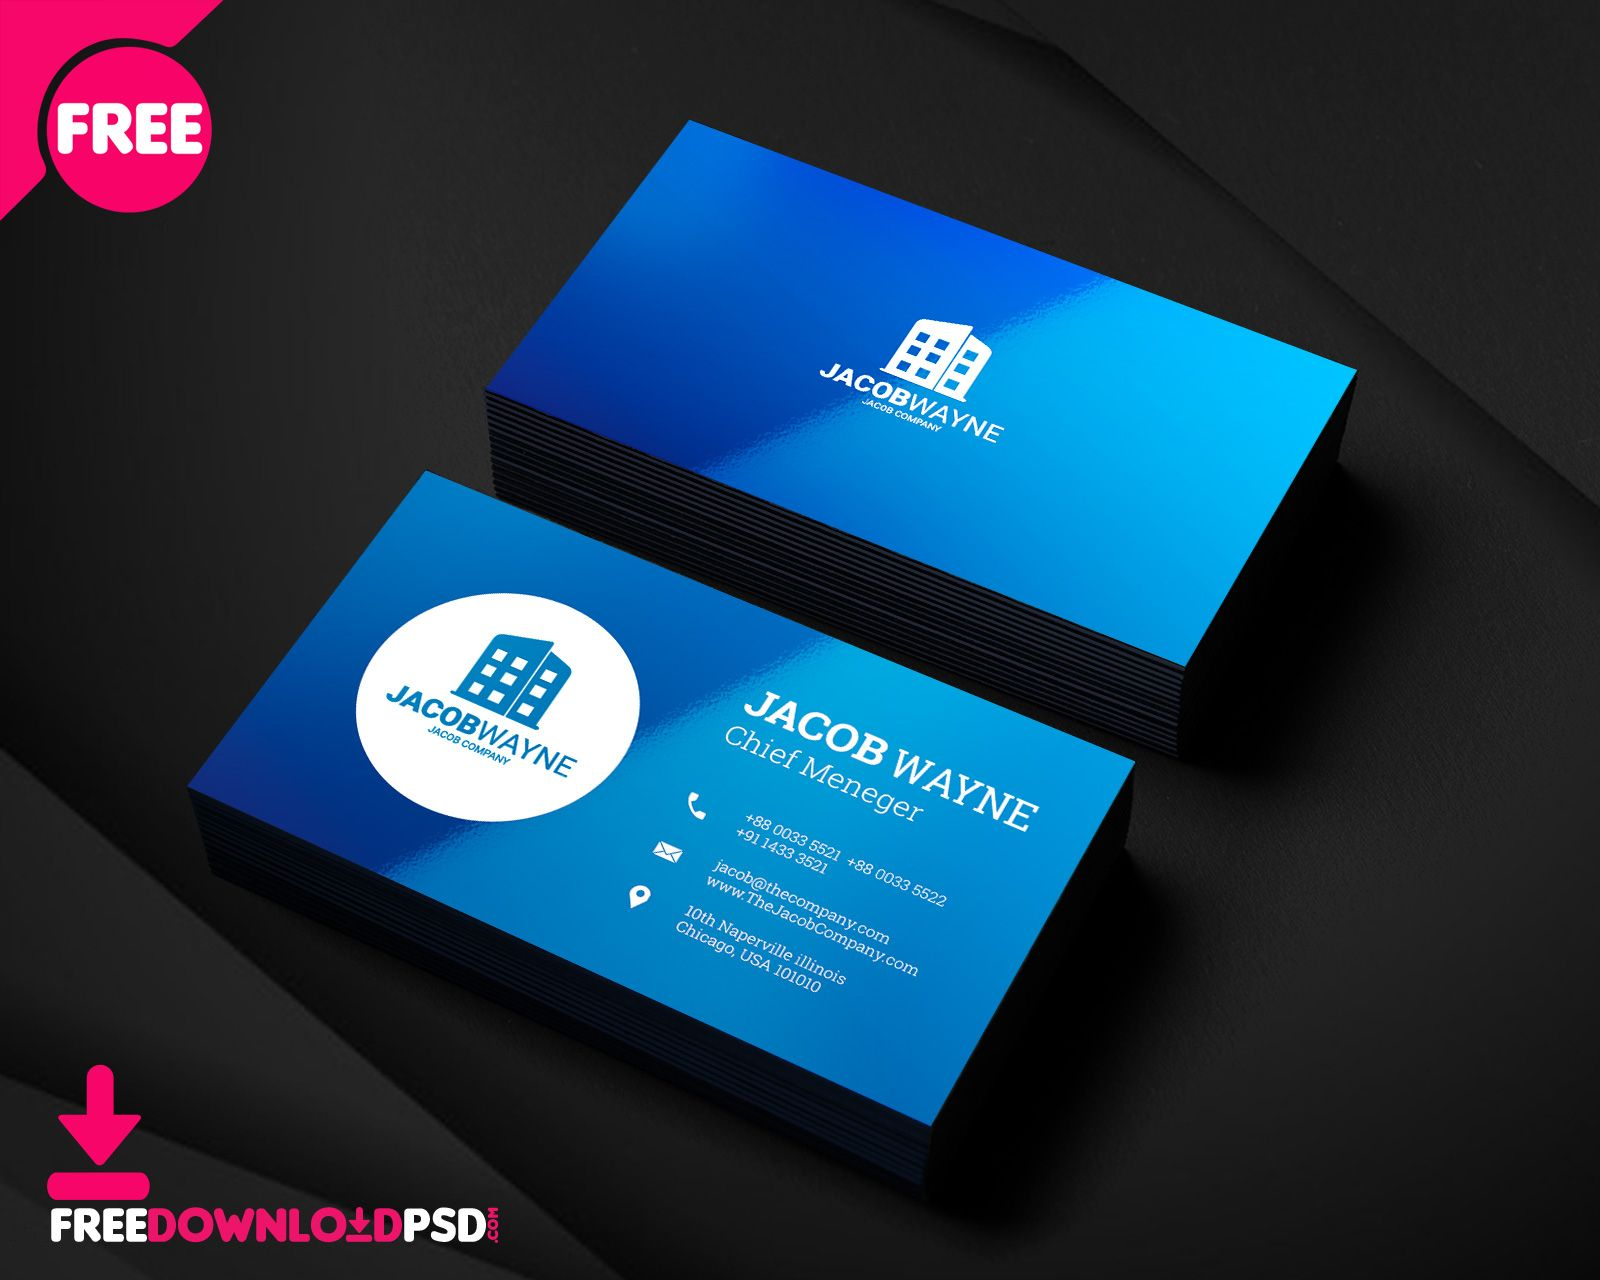 Real Estate Business Card Psd Freedownloadpsd Inside Photoshop Cs6 Business Create Business Cards Business Card Template Psd Business Card Template Photoshop